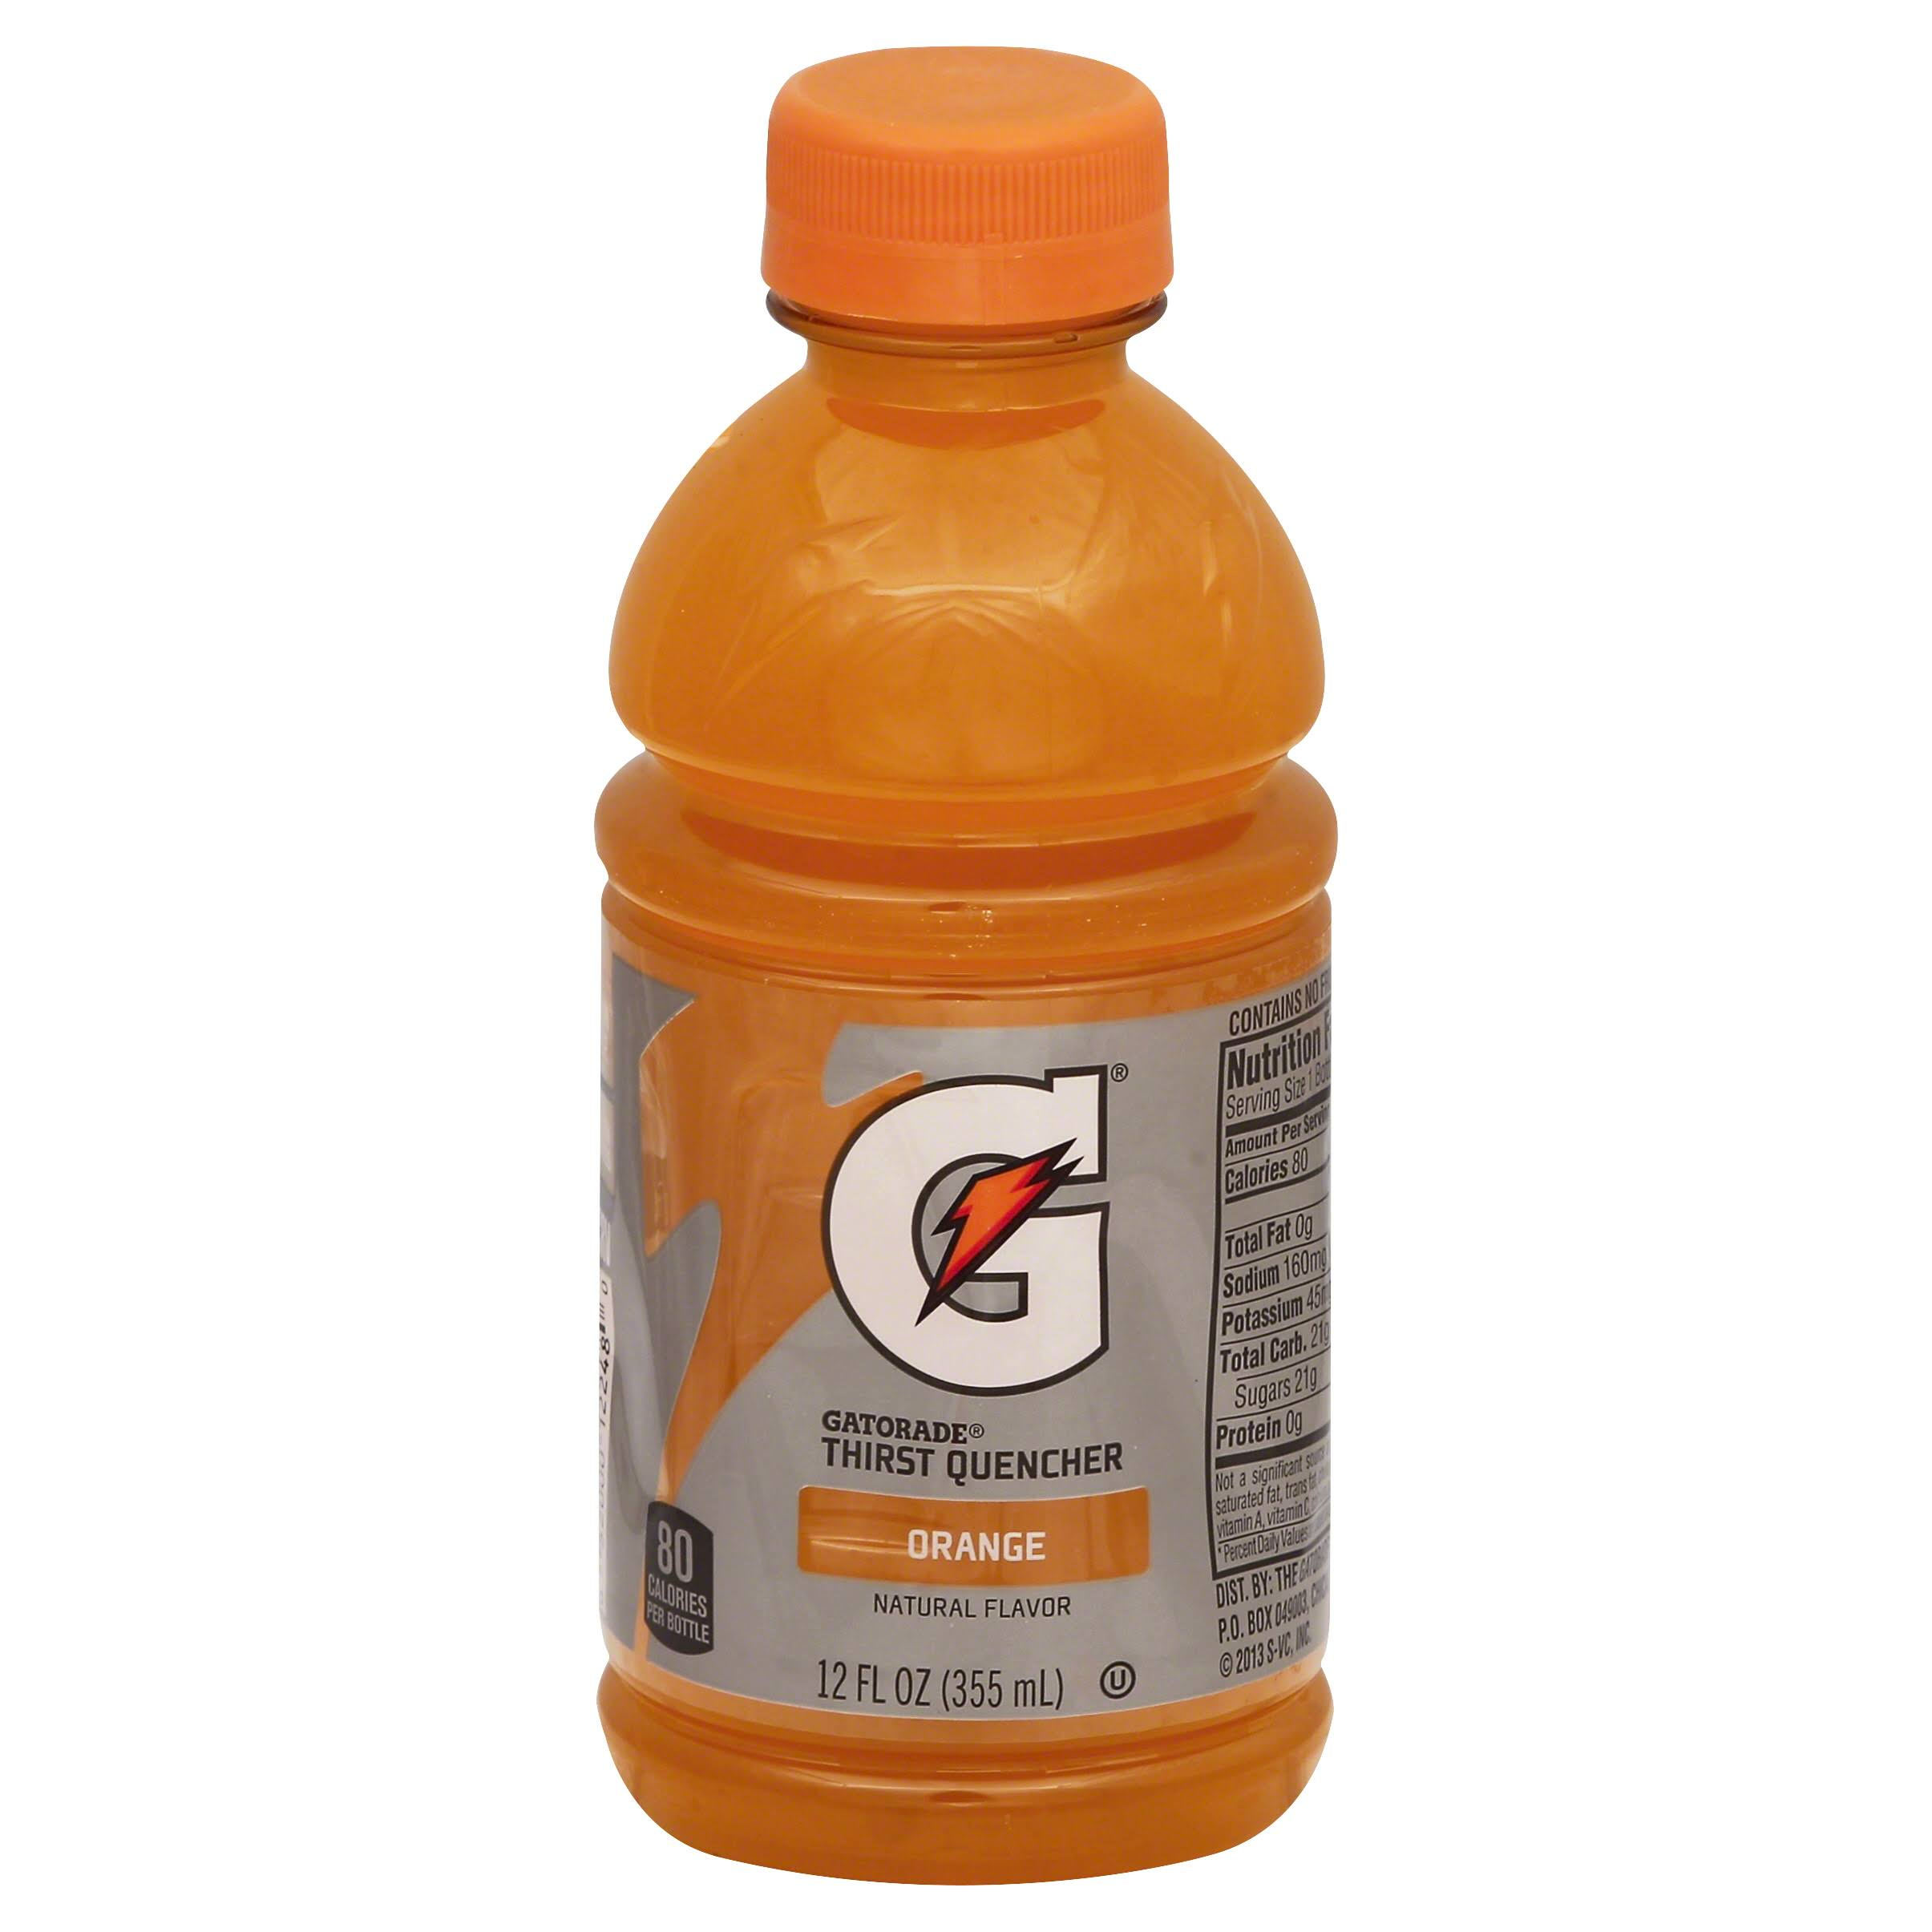 Gatorade G Series Thirst Quencher, Perform, Orange - 12 fl oz